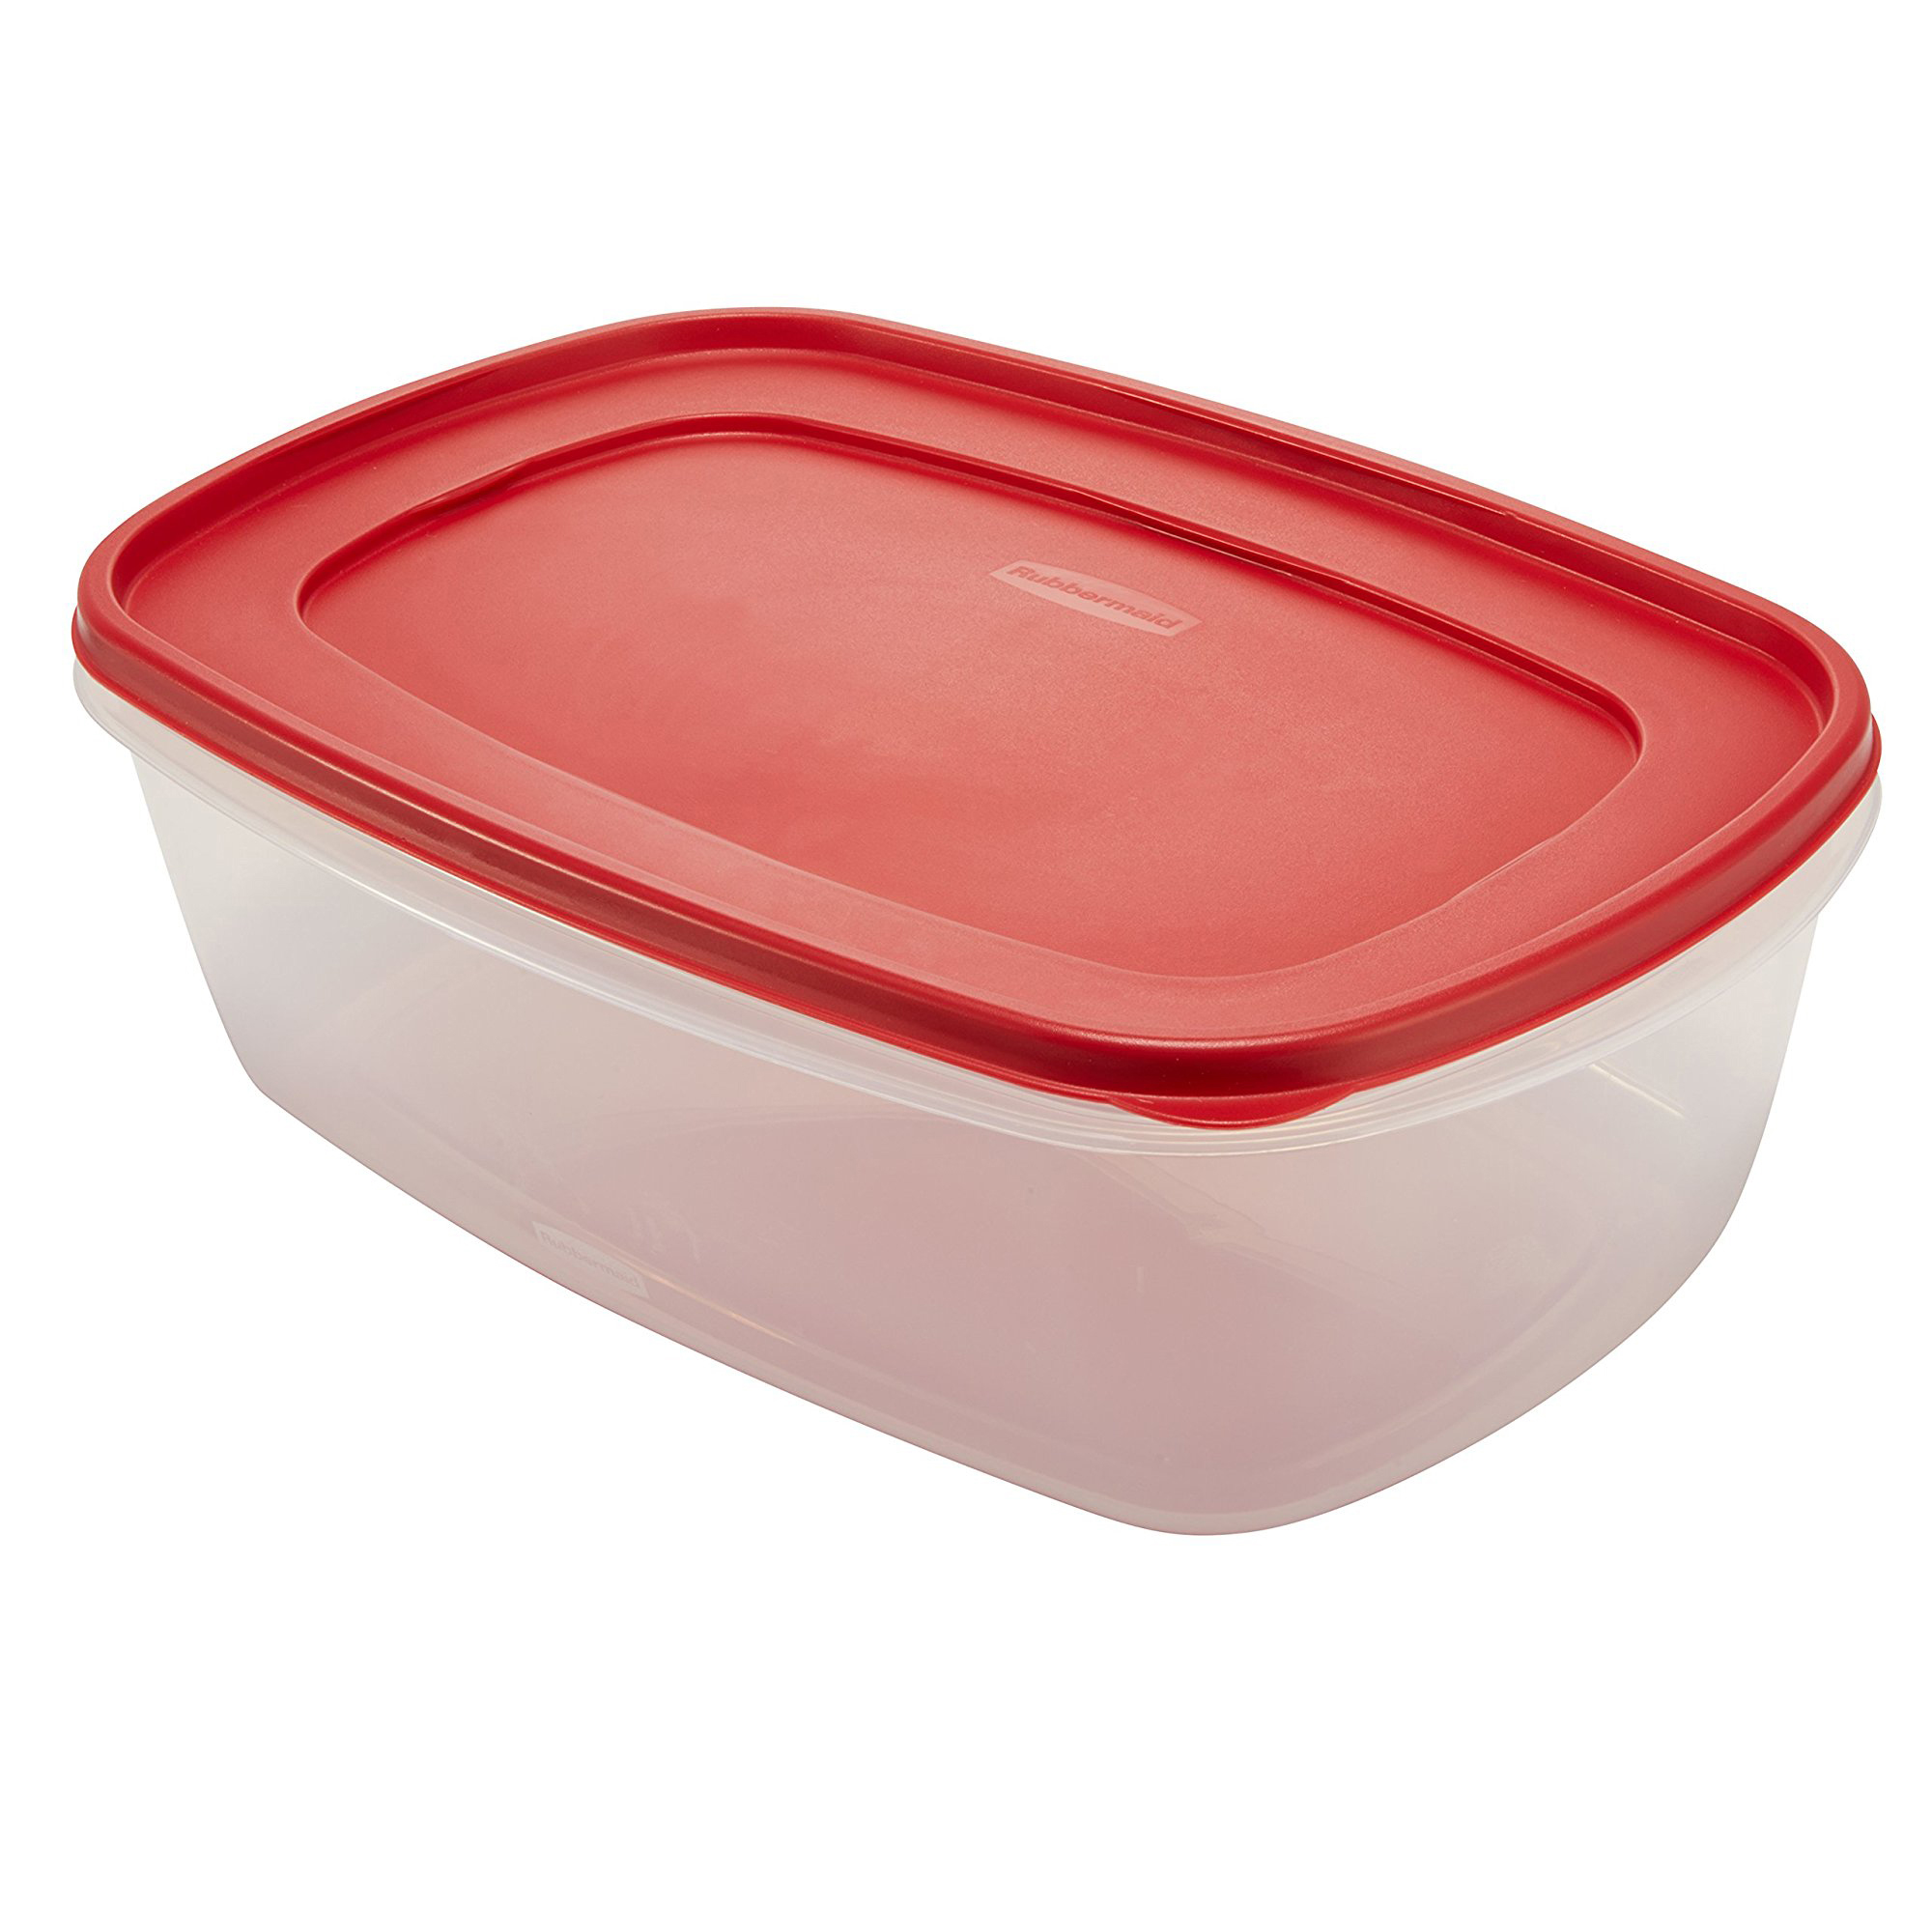 Rubbermaid Food Storage Container with Easy Find Lid, 2.5 Cup/0.59 Liter, Red